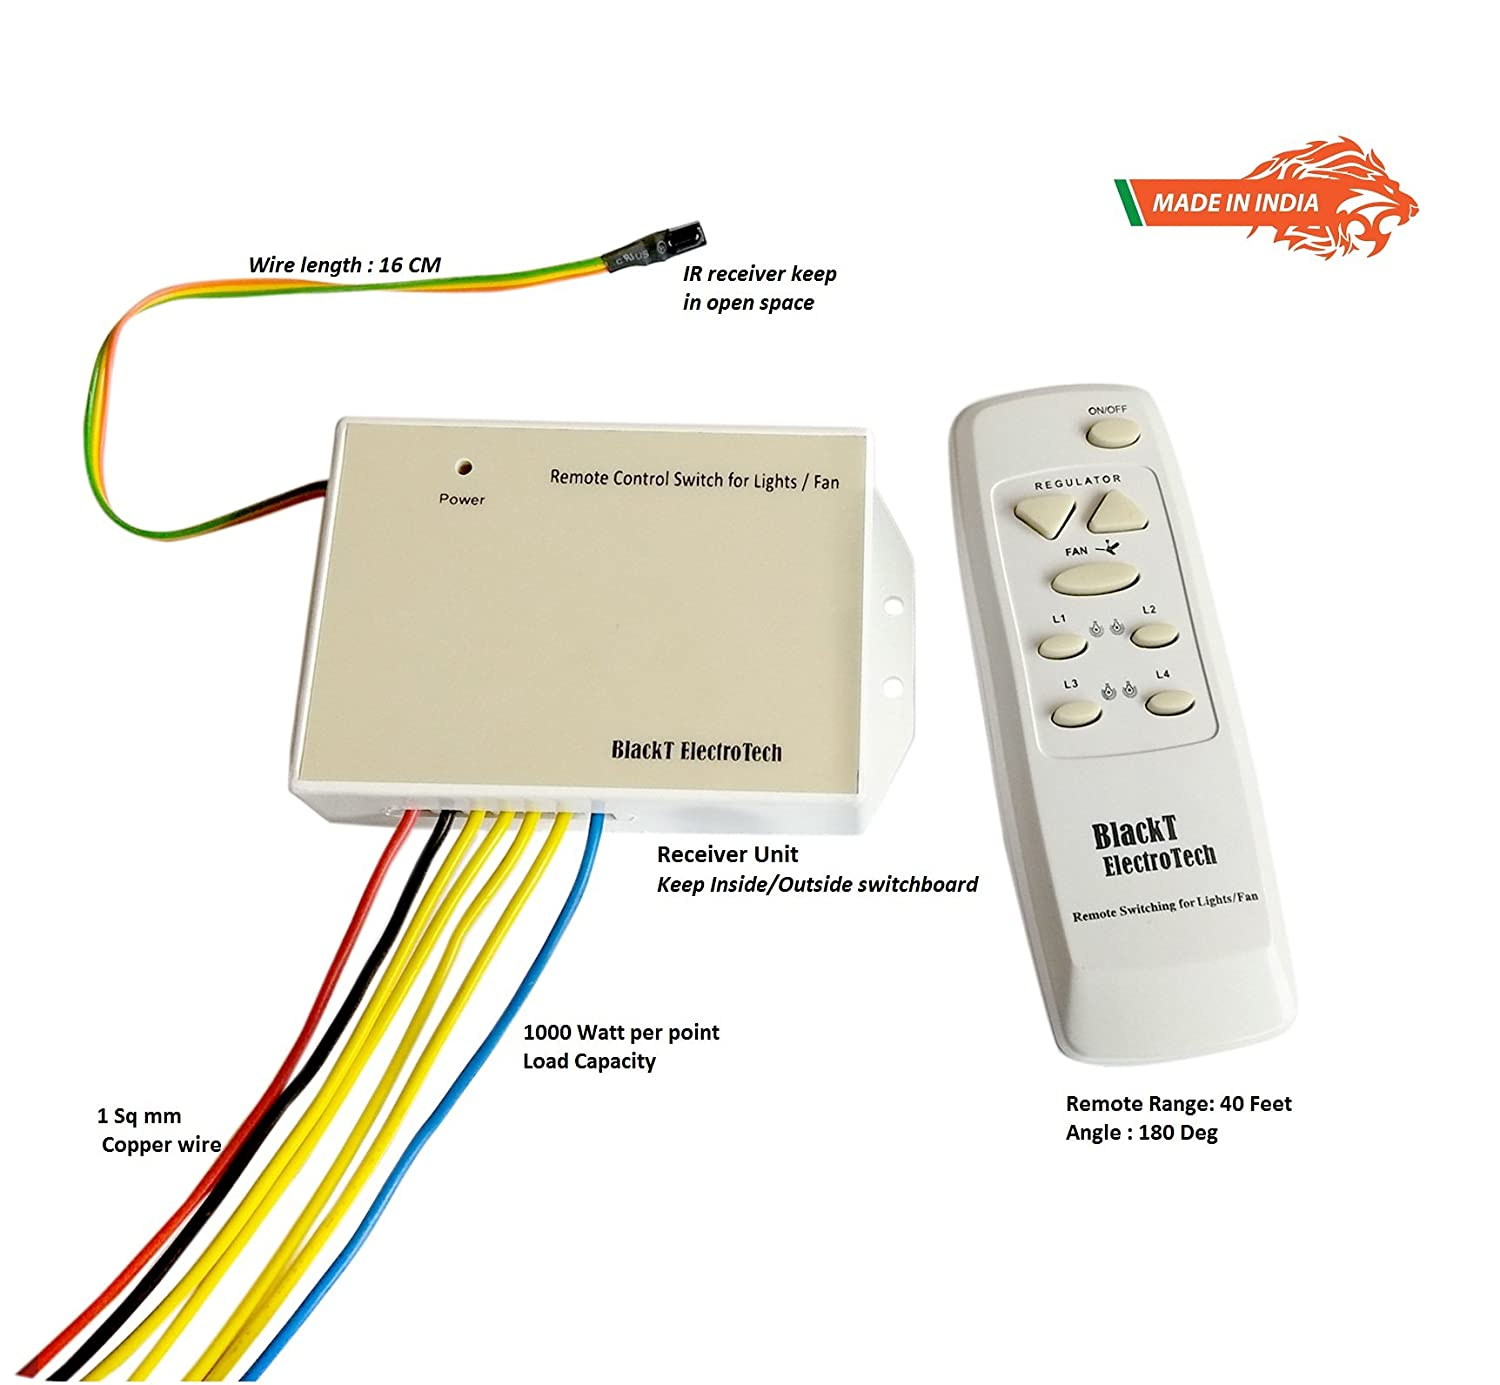 Blackt Electrotech Wireless Remote Control Switch System For 4 How To Replace A Ceiling Fan Speed Remove Lights 1 With Regulation Dimmer Humming Less Made In India Copper